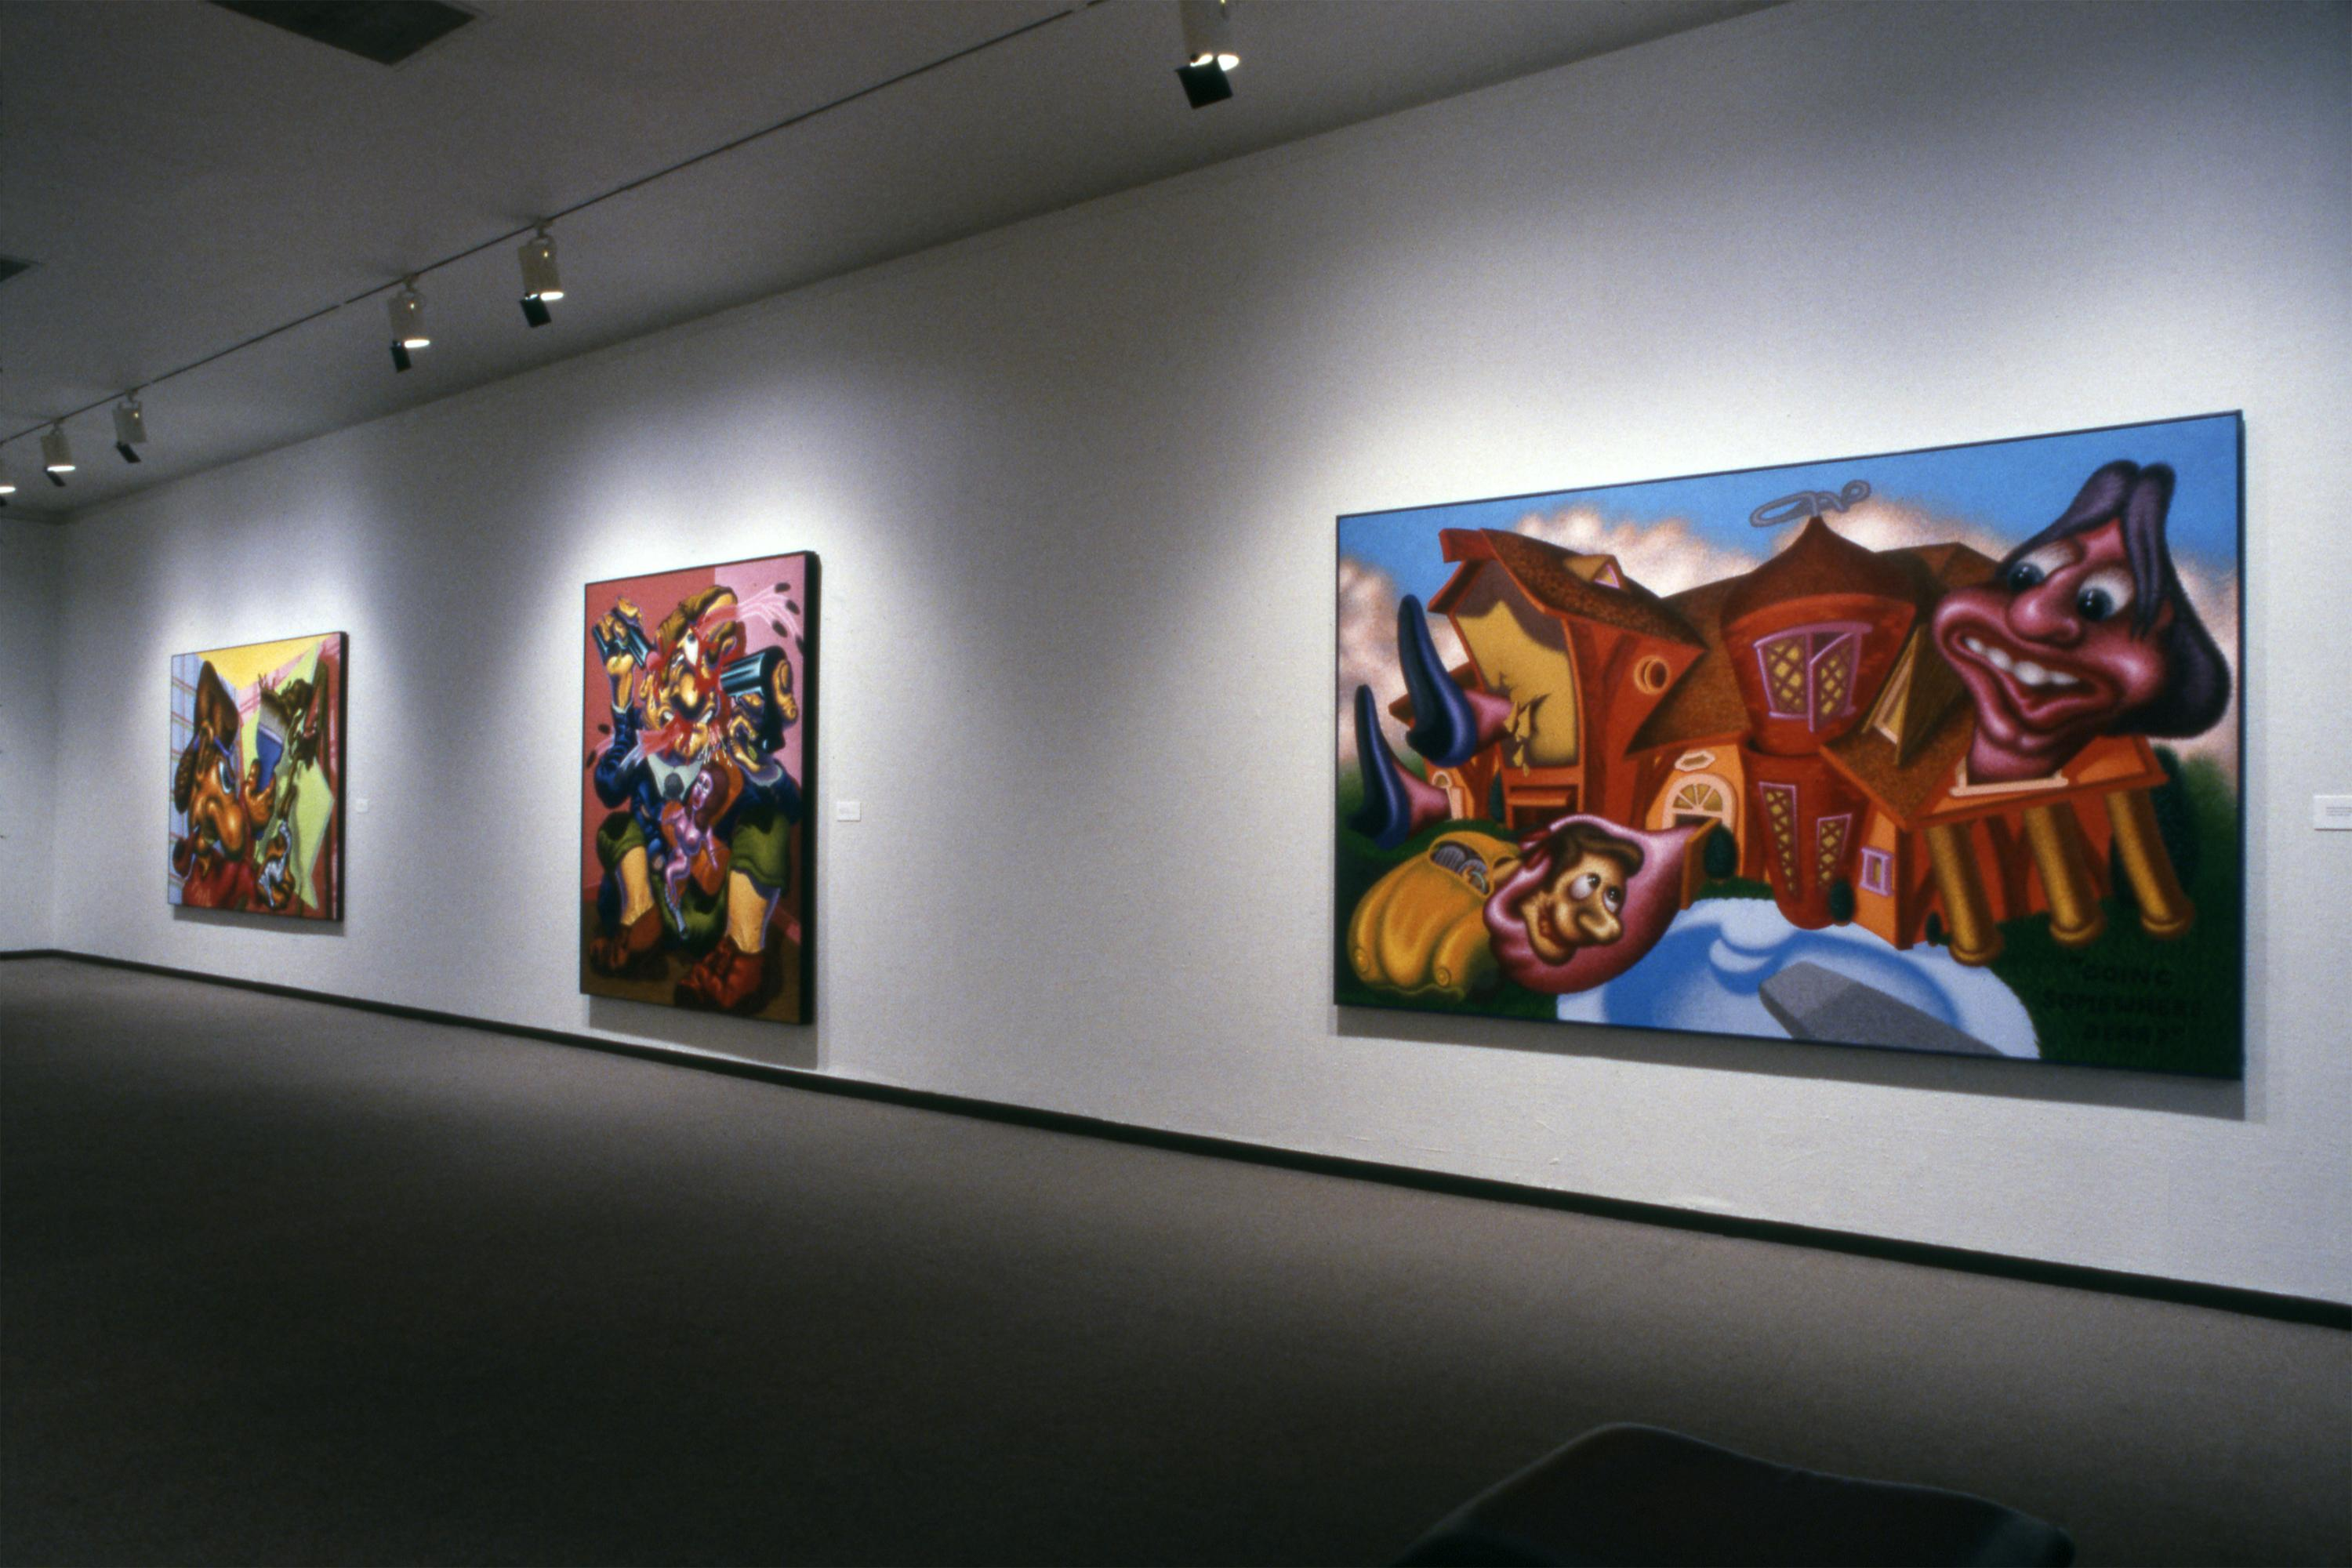 Three large, colorful paintings hang on a dramatically lit white wall.